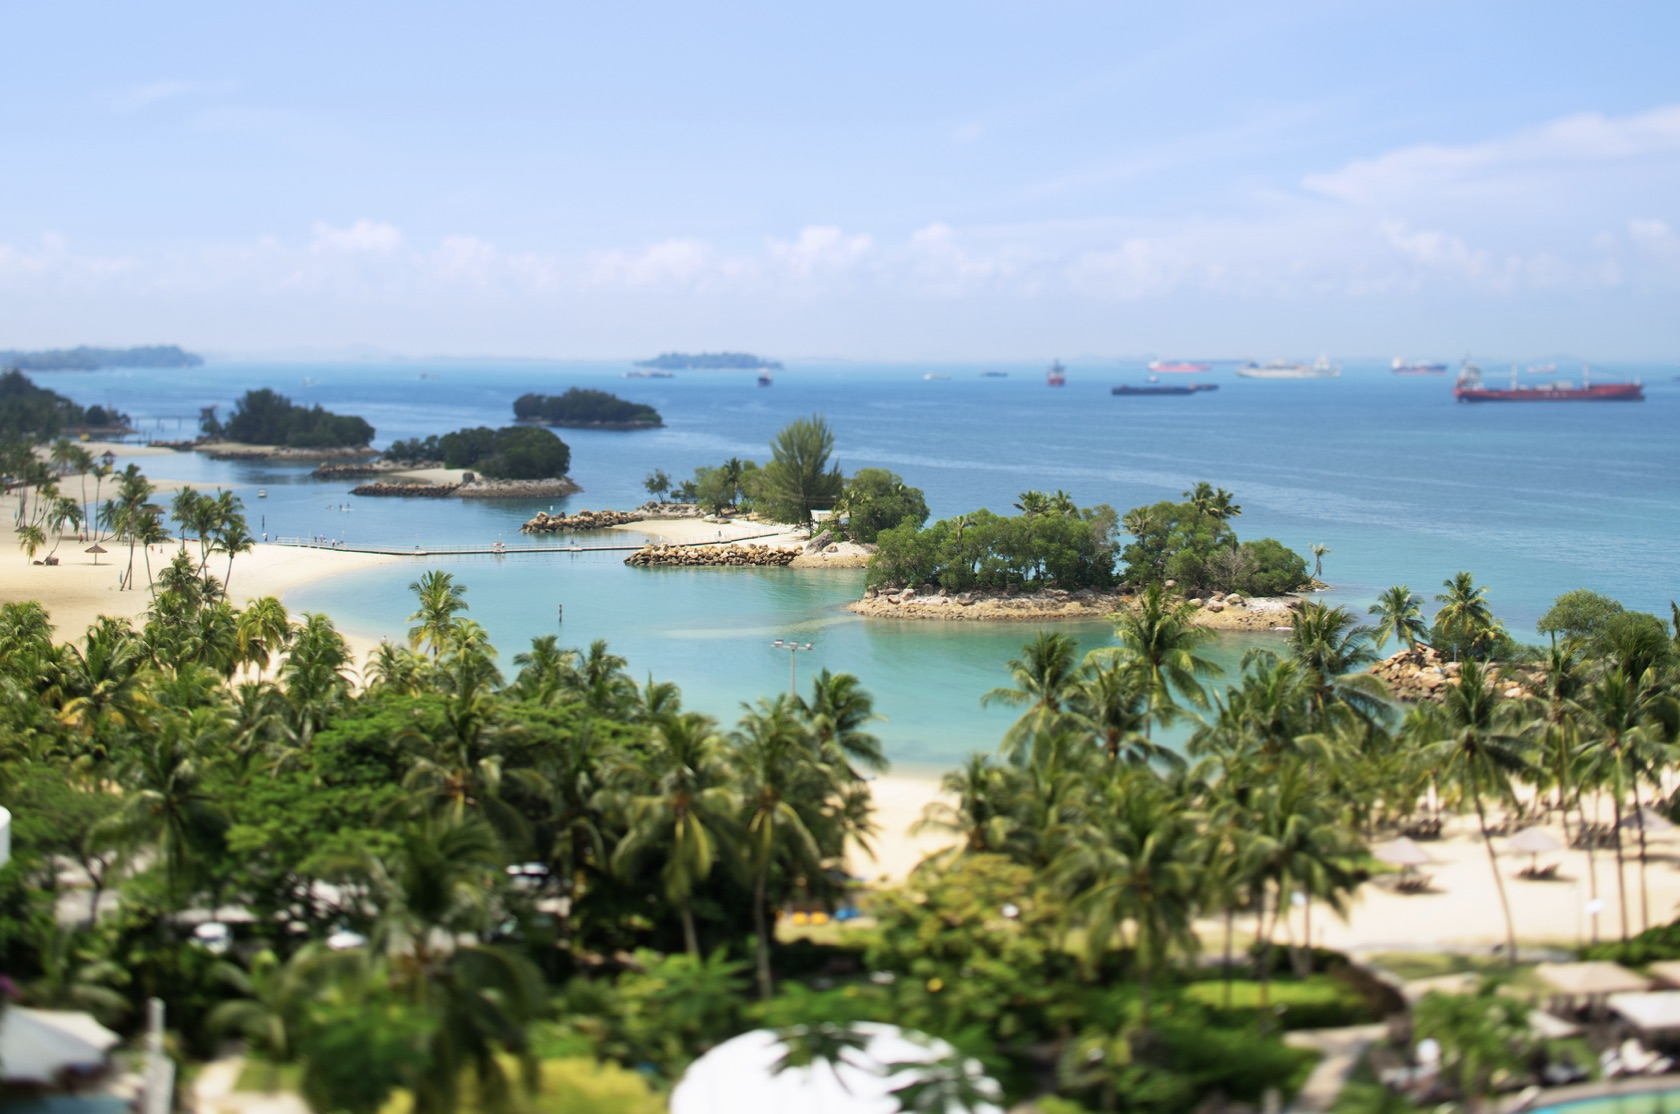 Visit this island for your Singapore excursions